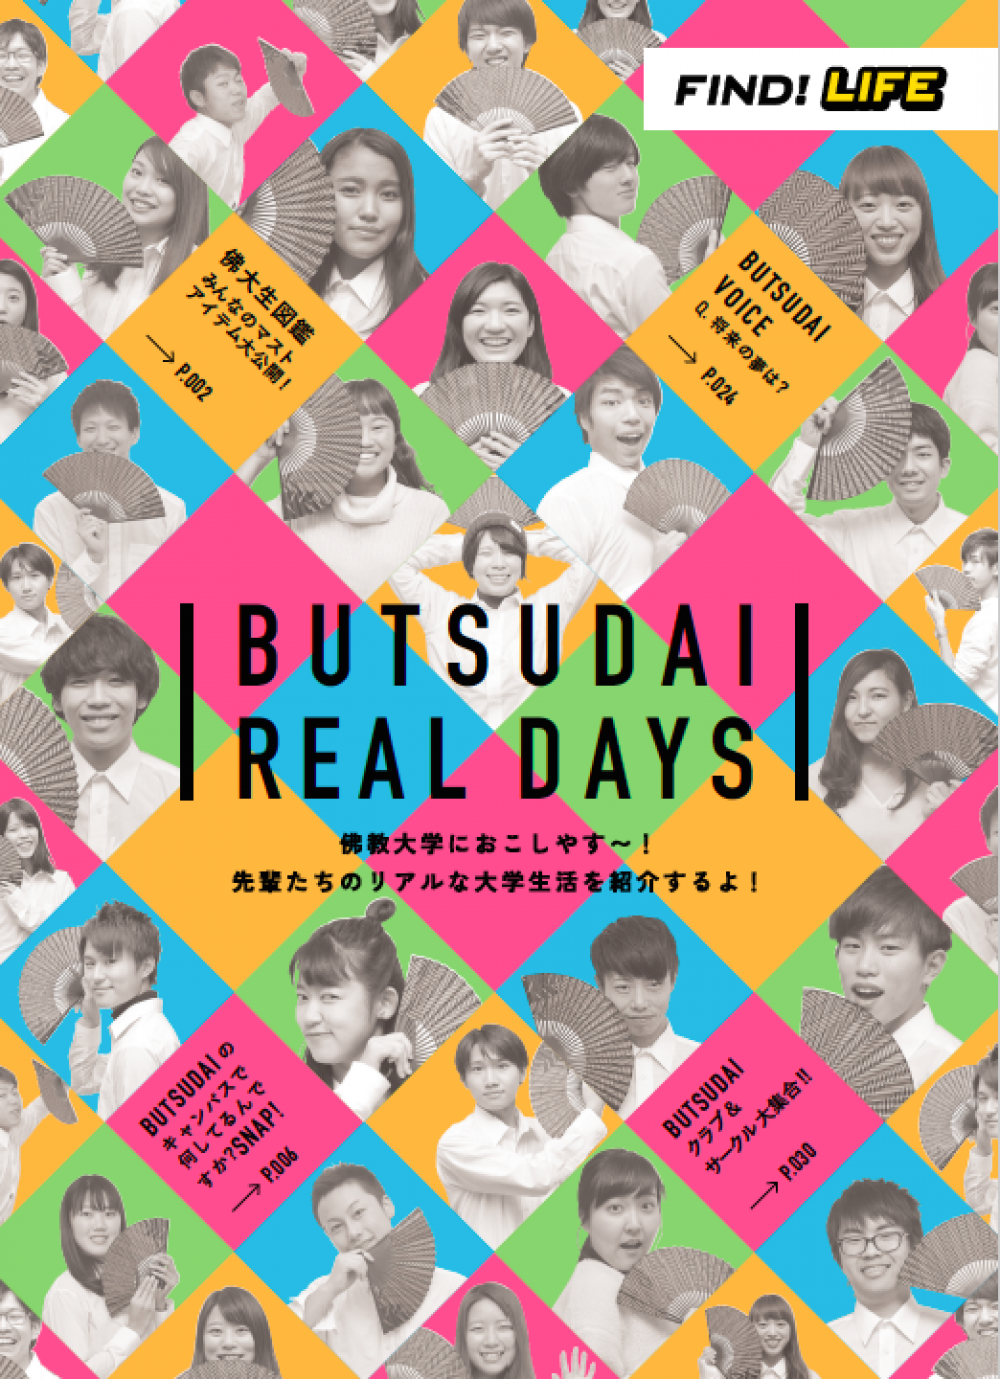 BUTSUDAI REAL DAYS